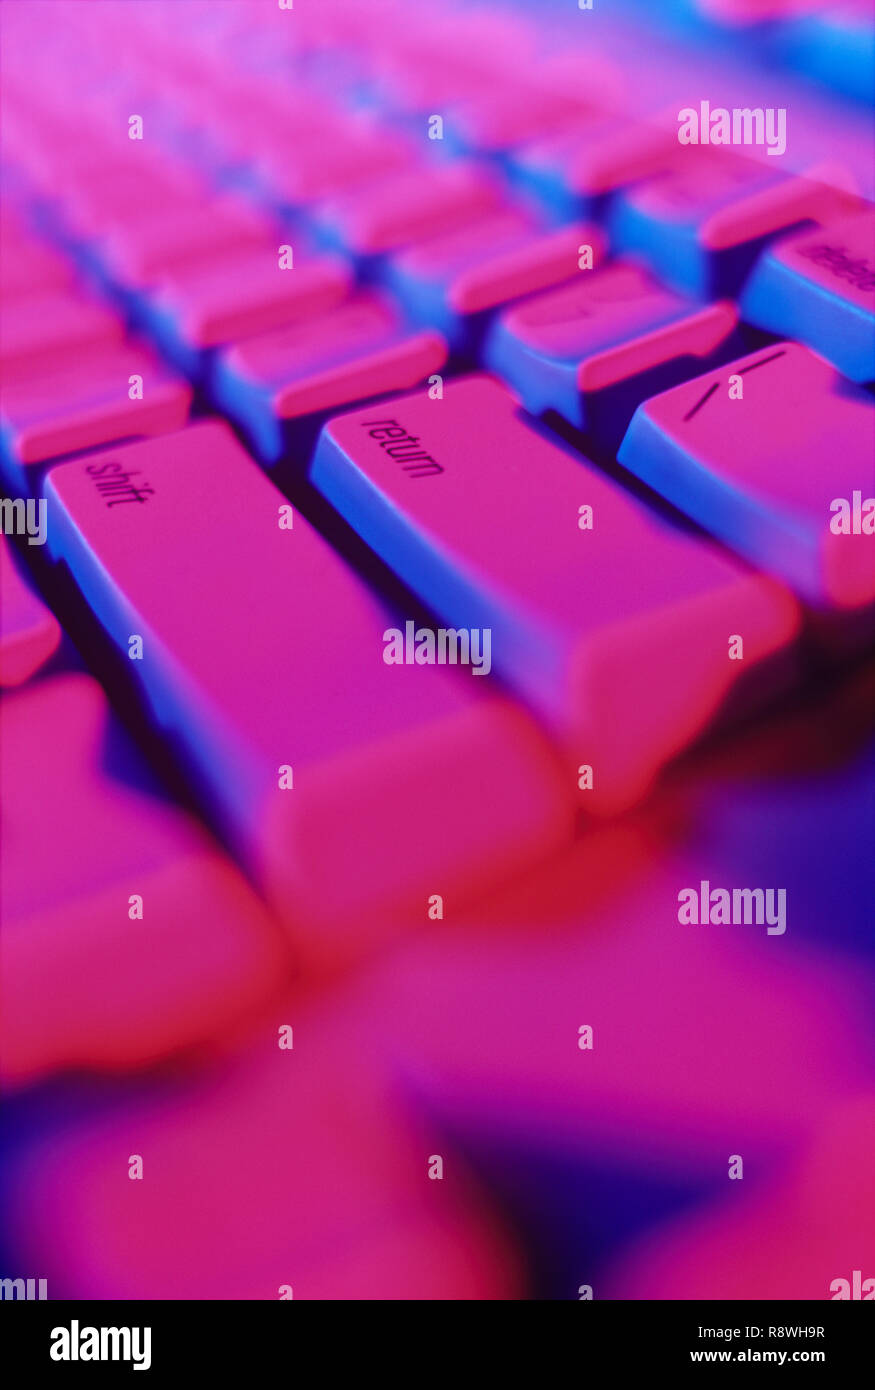 Colorful closeup of computer keyboard with the emphasize on the enter key - Stock Image